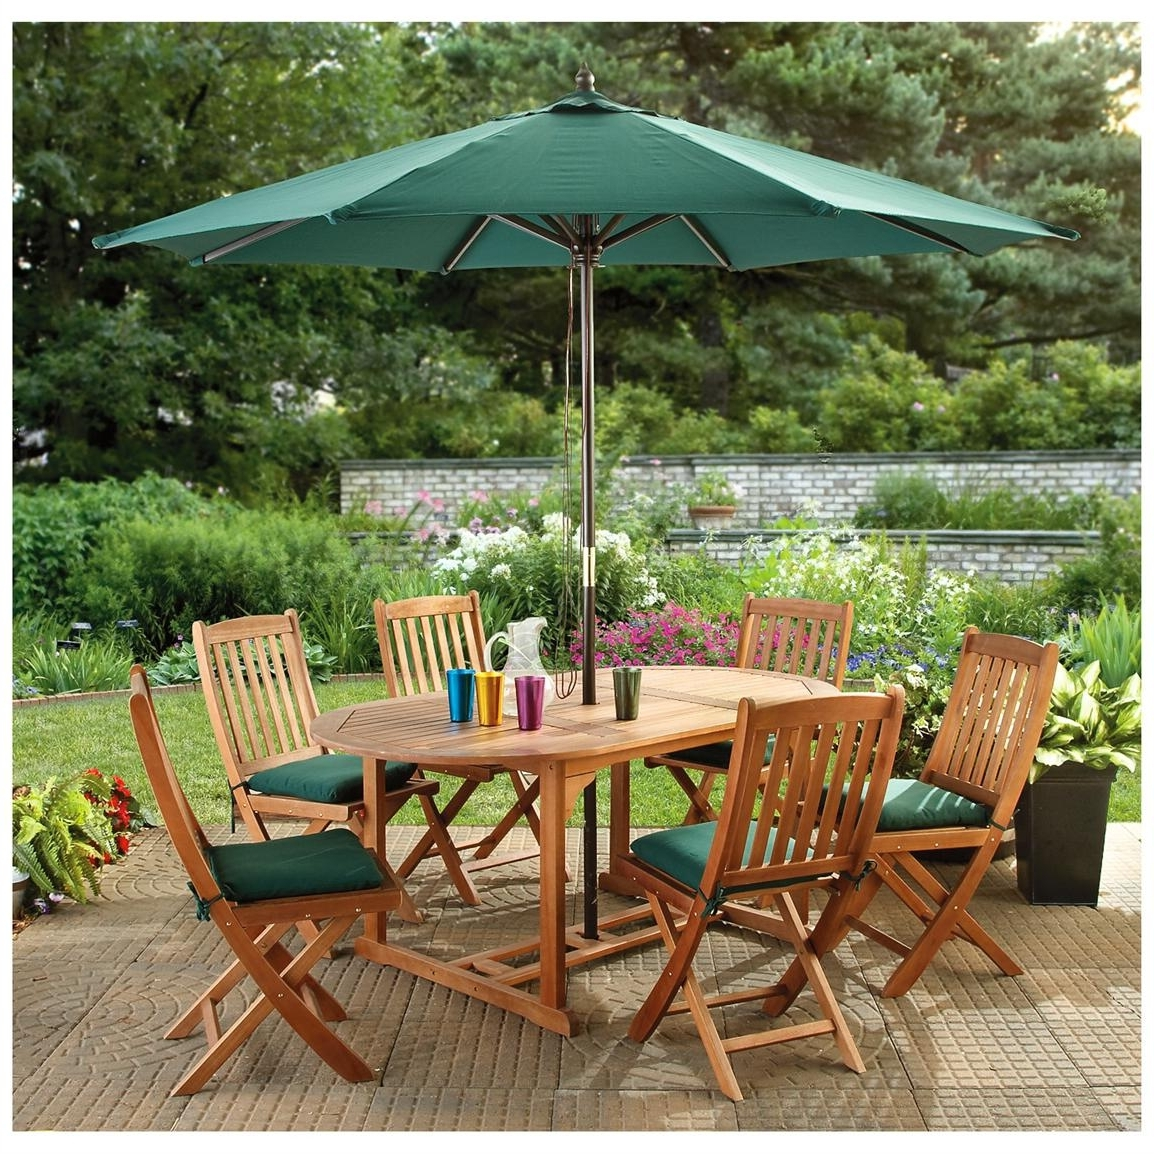 Patio Conversation Sets With Umbrella Intended For 2019 Patio Furniture With Umbrella Ideas : Sathoud Decors – Decorating (View 4 of 20)